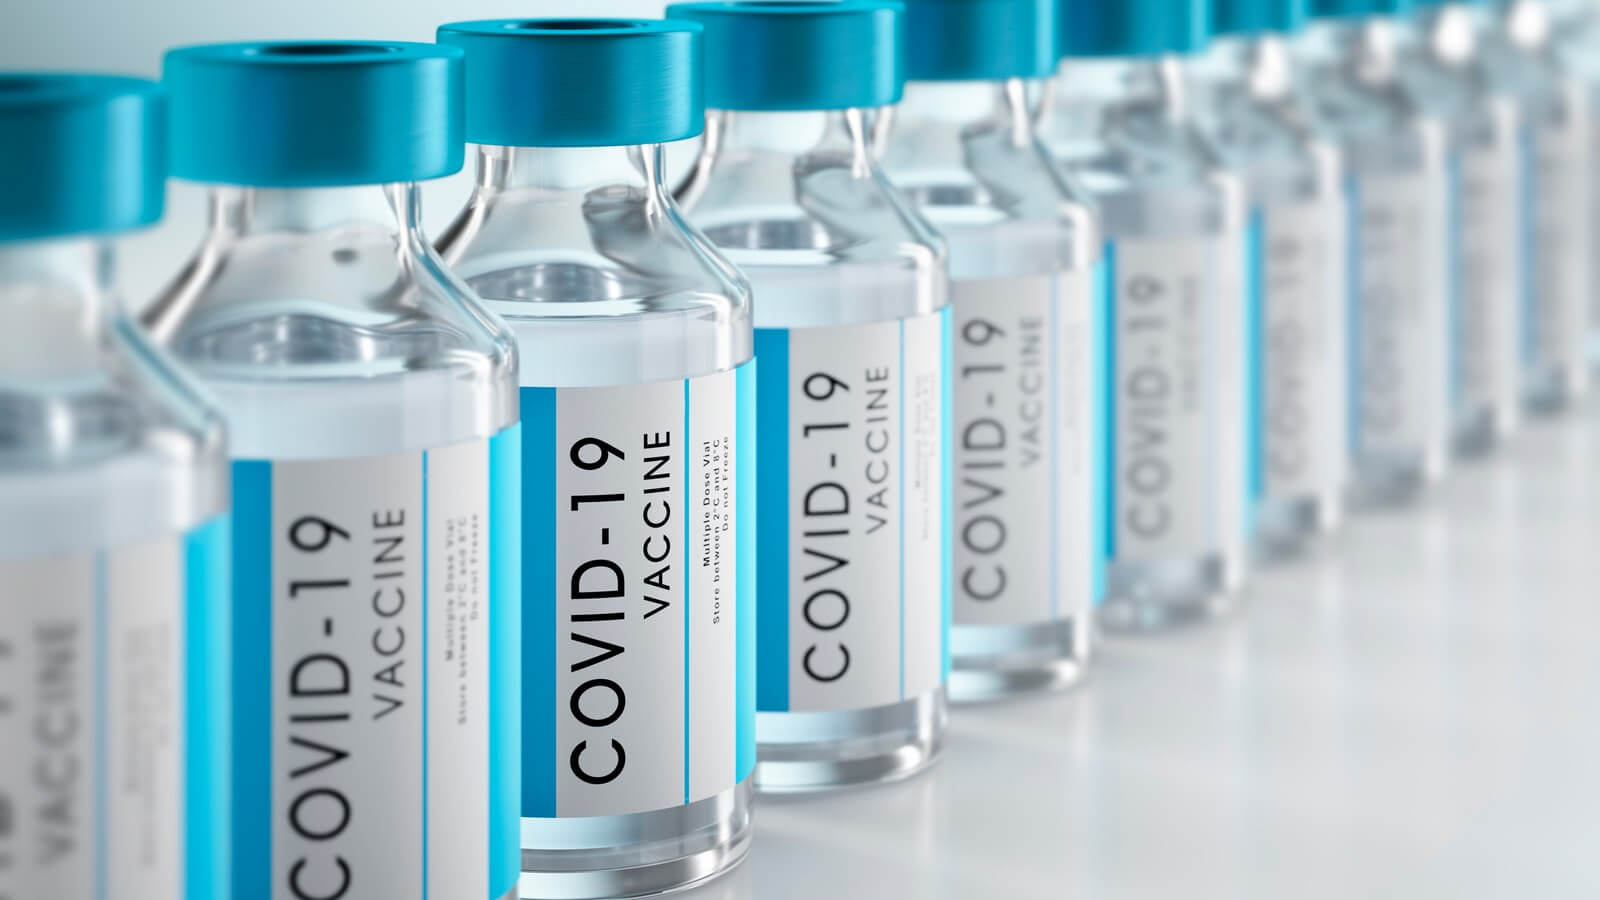 NITI Aayog proposes COVID-19 vaccine  price range between Rs 300-500 for private hospitals